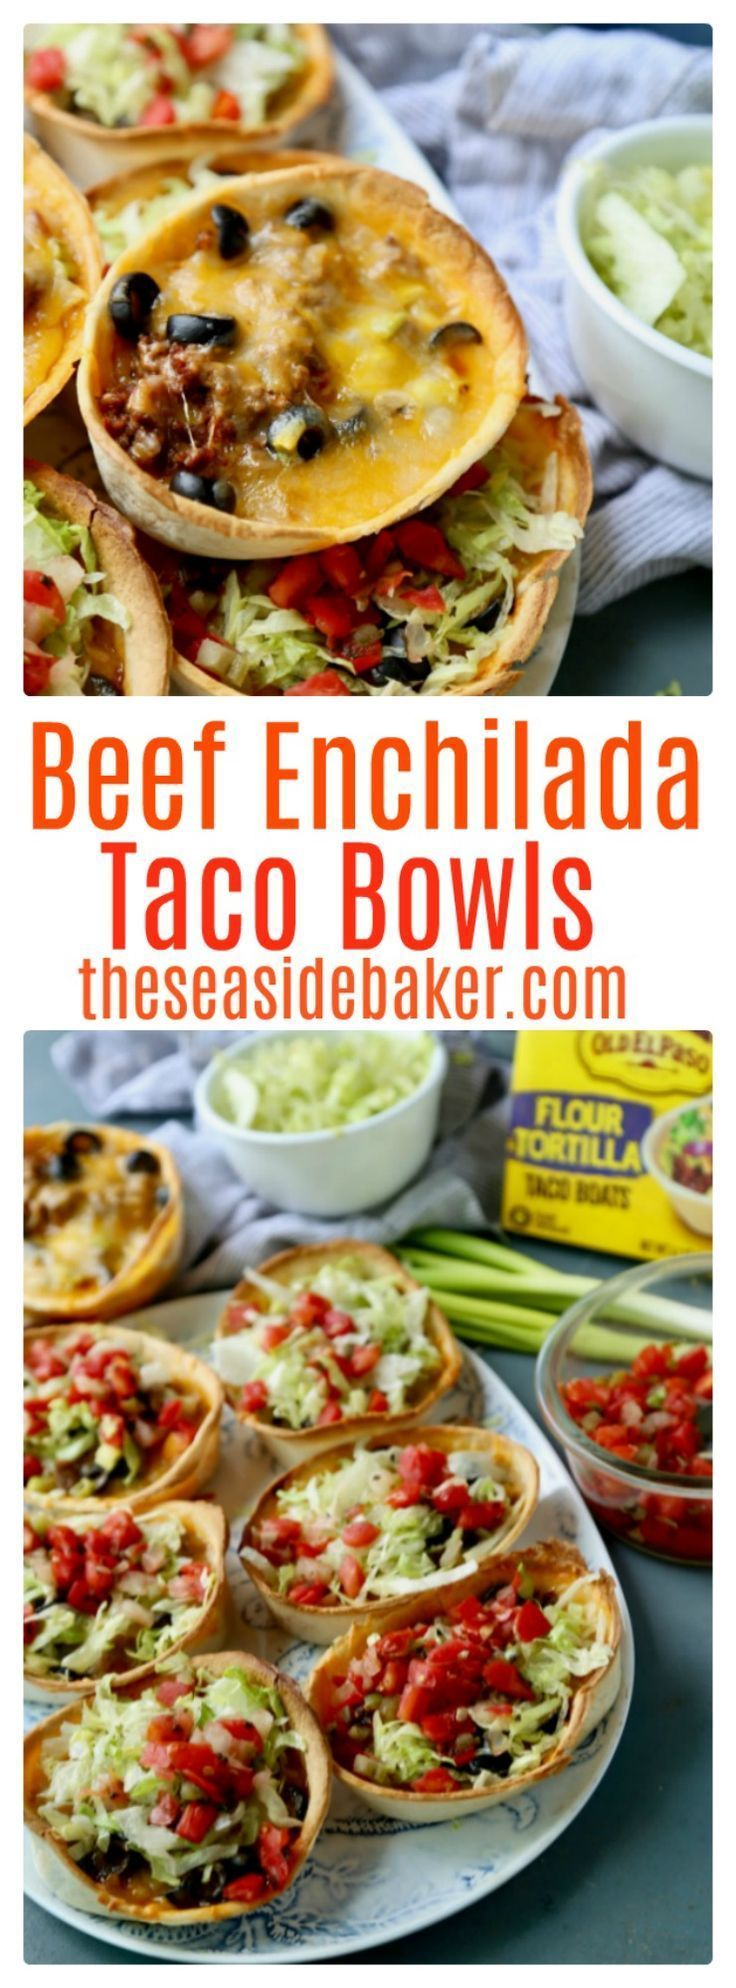 Beef Enchilada Taco Boats These Beef Enchilada Boats are easy to make and perfect for Sunday Football munching